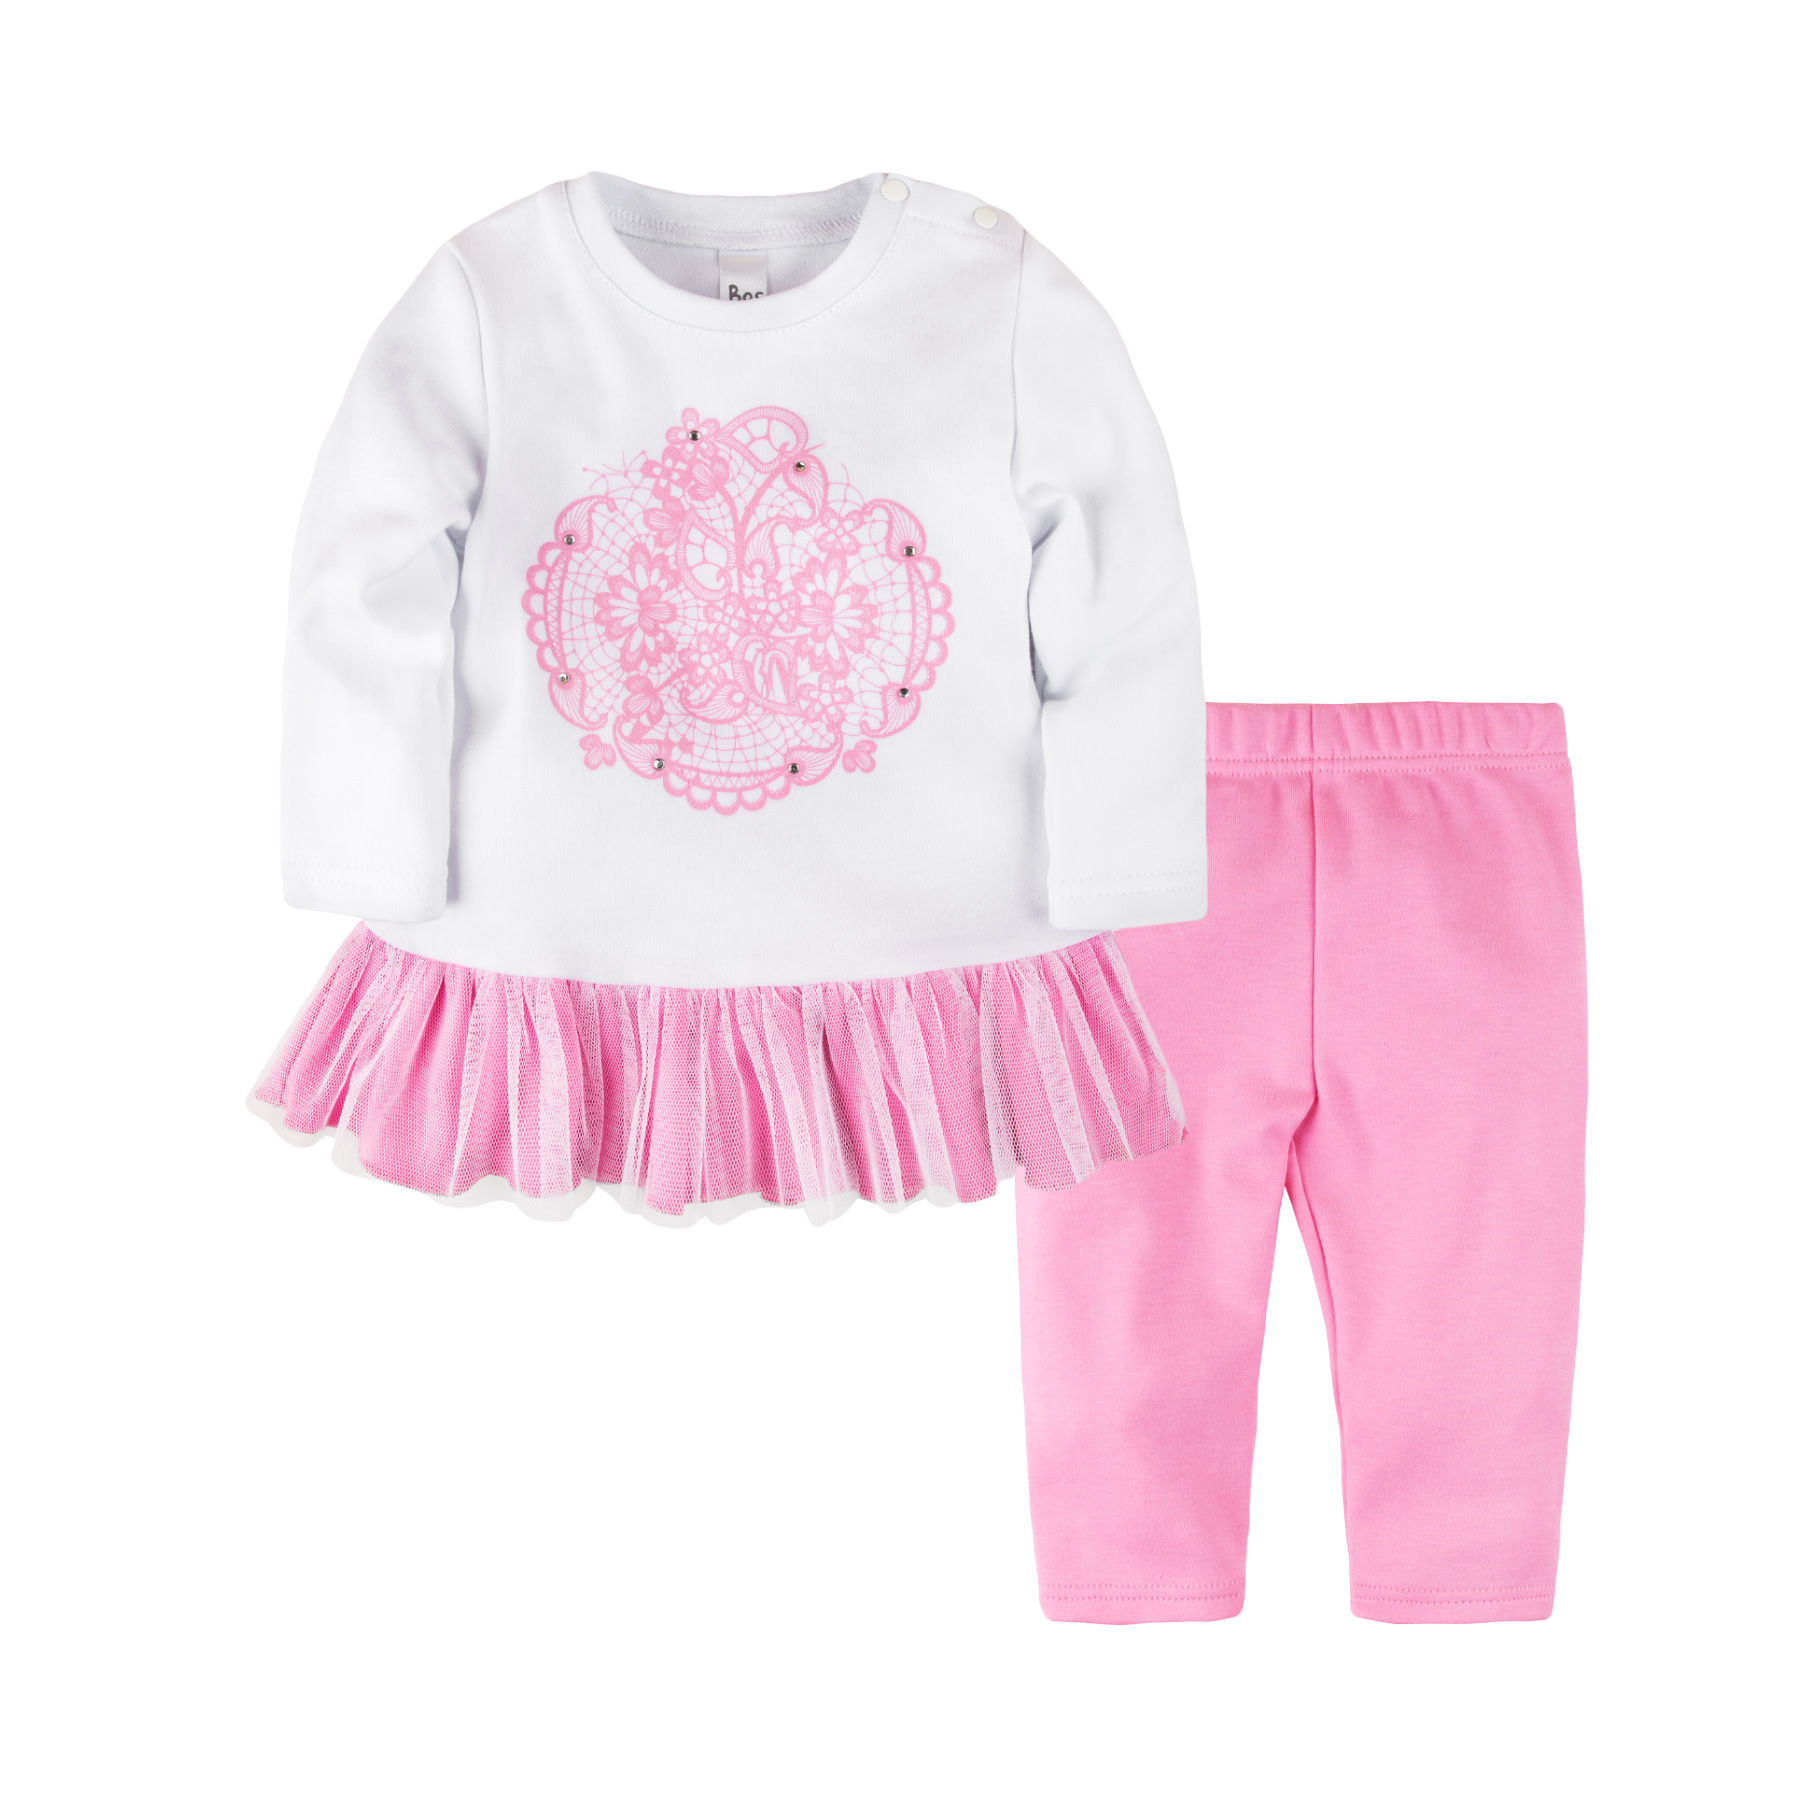 Baby's Set of tunic + leggings for girls BOSSA NOVA 085B-351 kid clothes children clothing rose print tunic dress